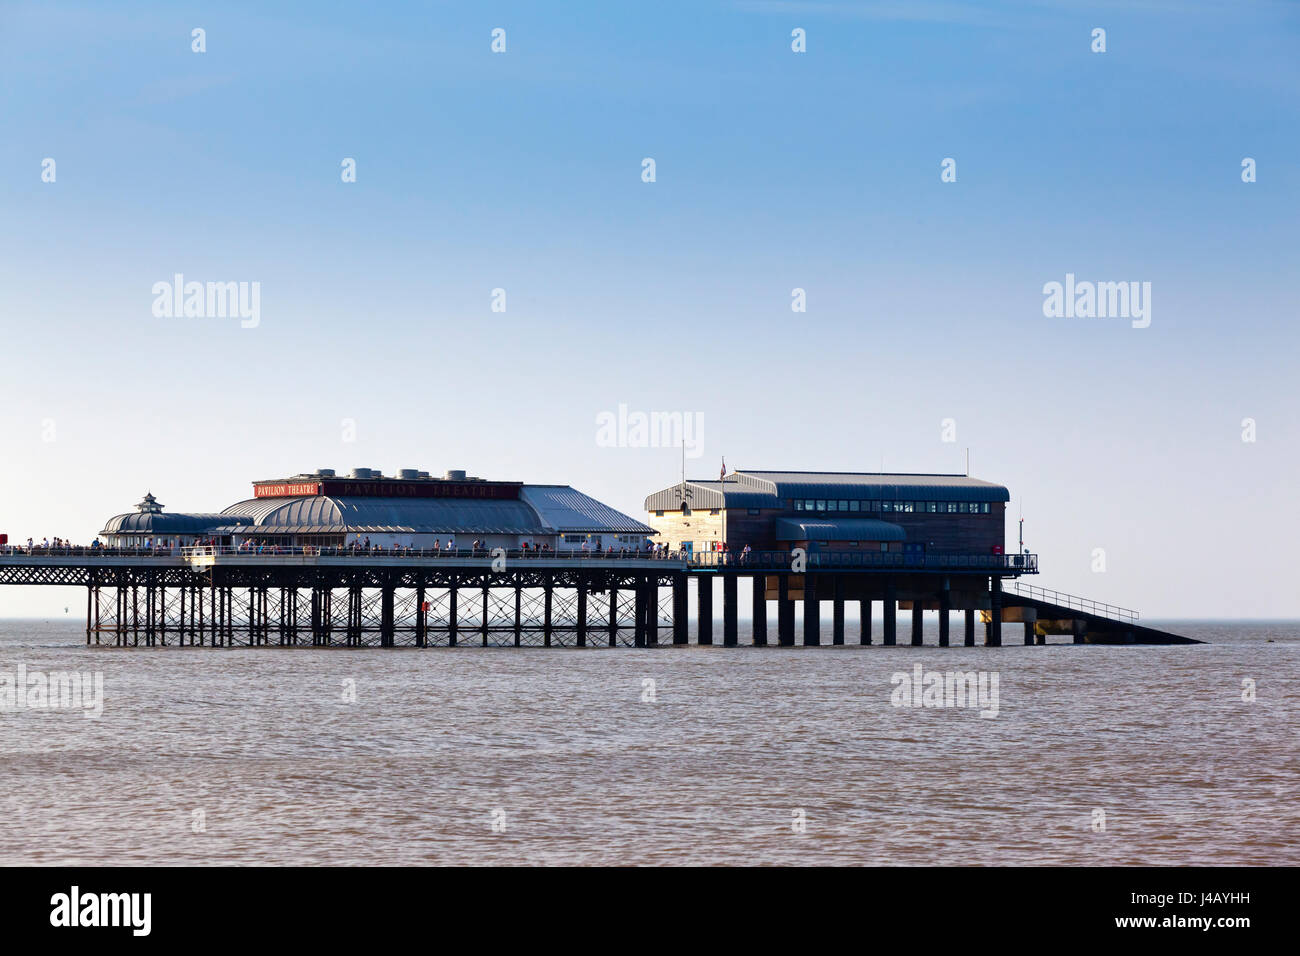 Cromer Pier on the North Norfolk coast England UK built in 1902 - Stock Image